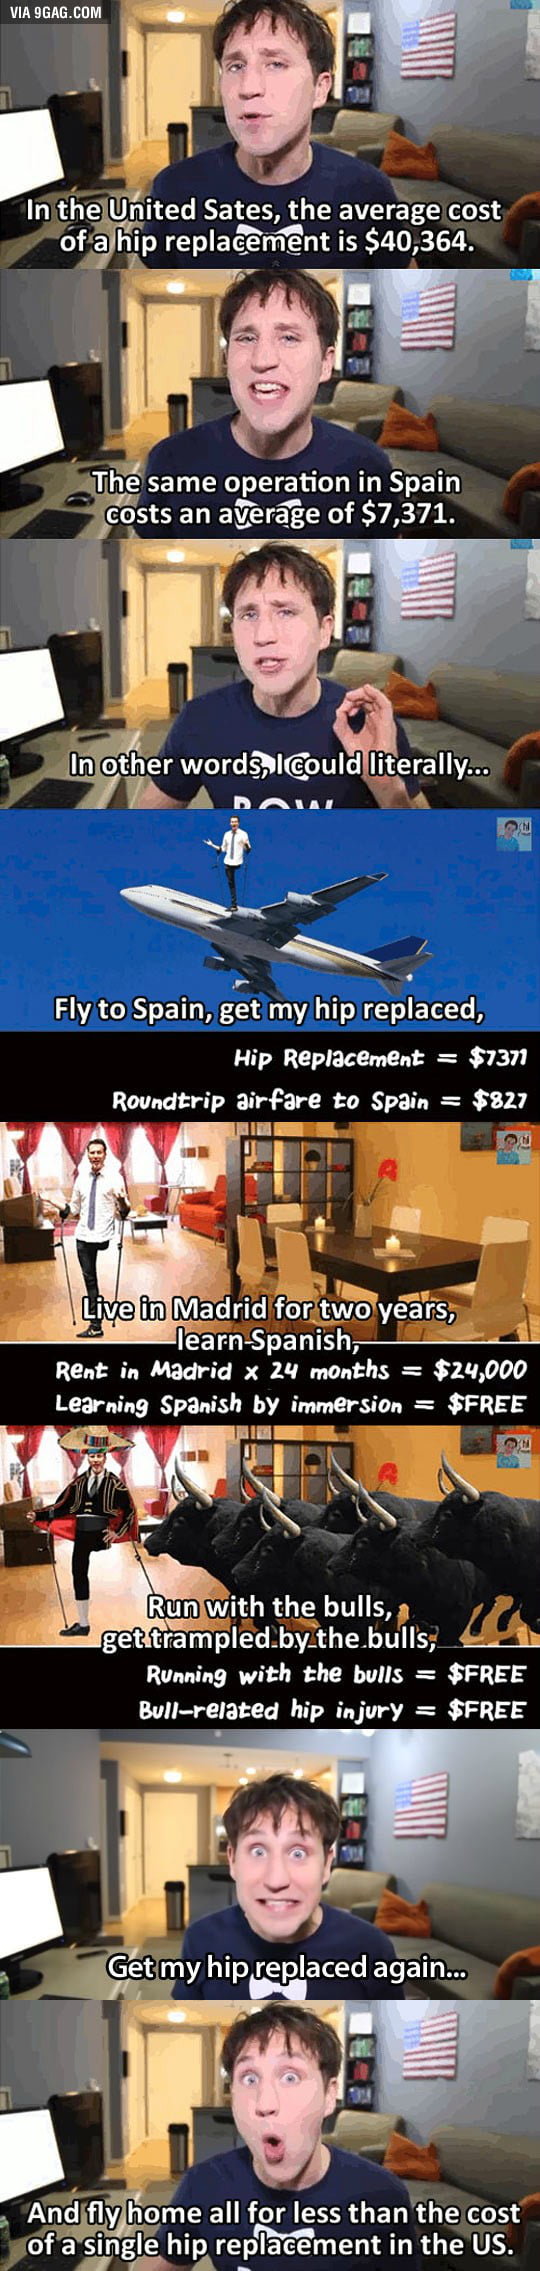 The cost of a hip replacement is too damn high!